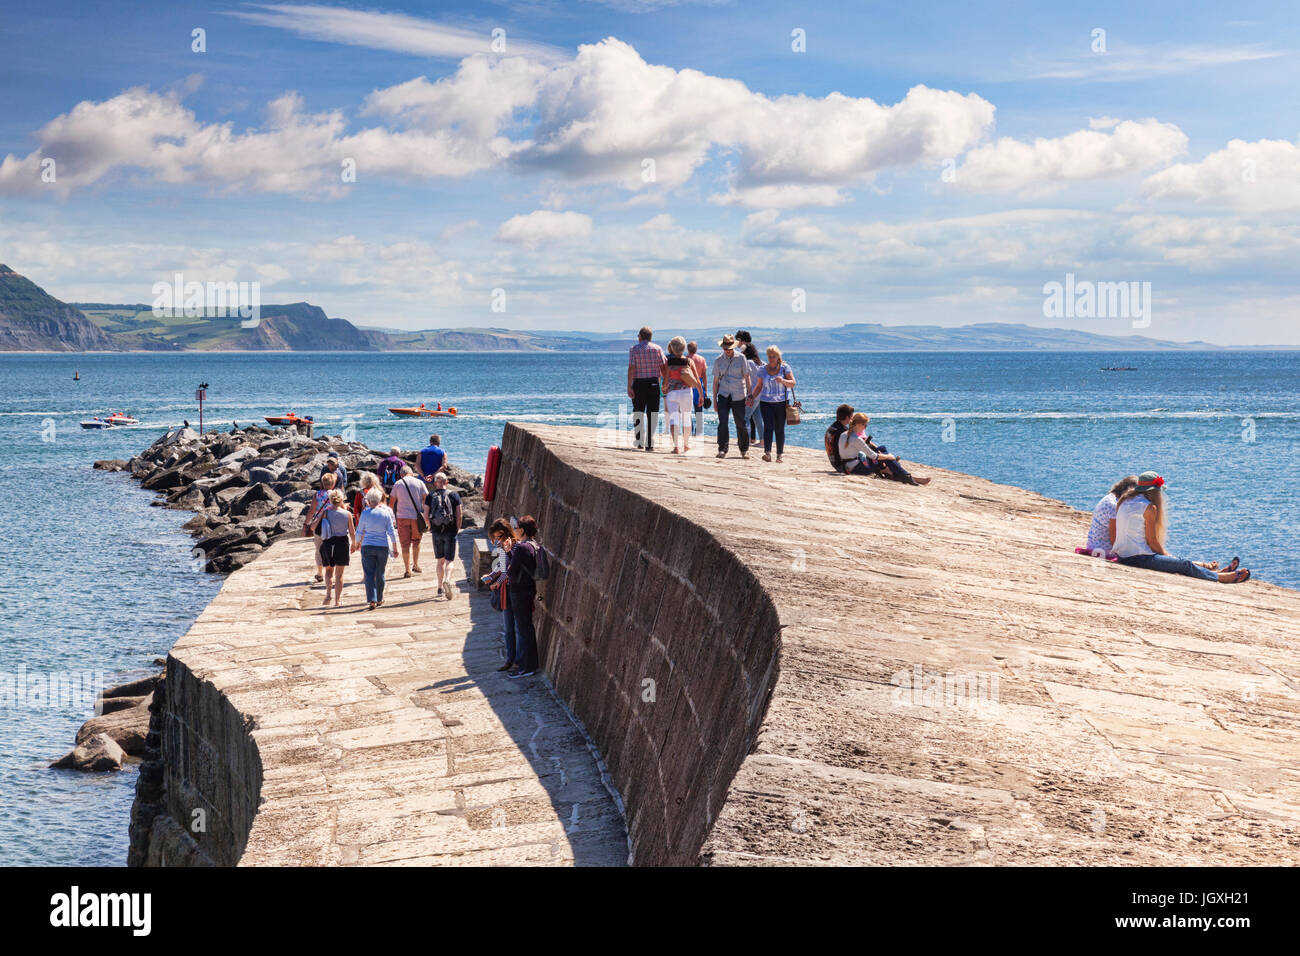 1 July 2017: Lyme Regis, Dorset, England, UK - Visitors enjoying the good weather on The Cobb. - Stock Image